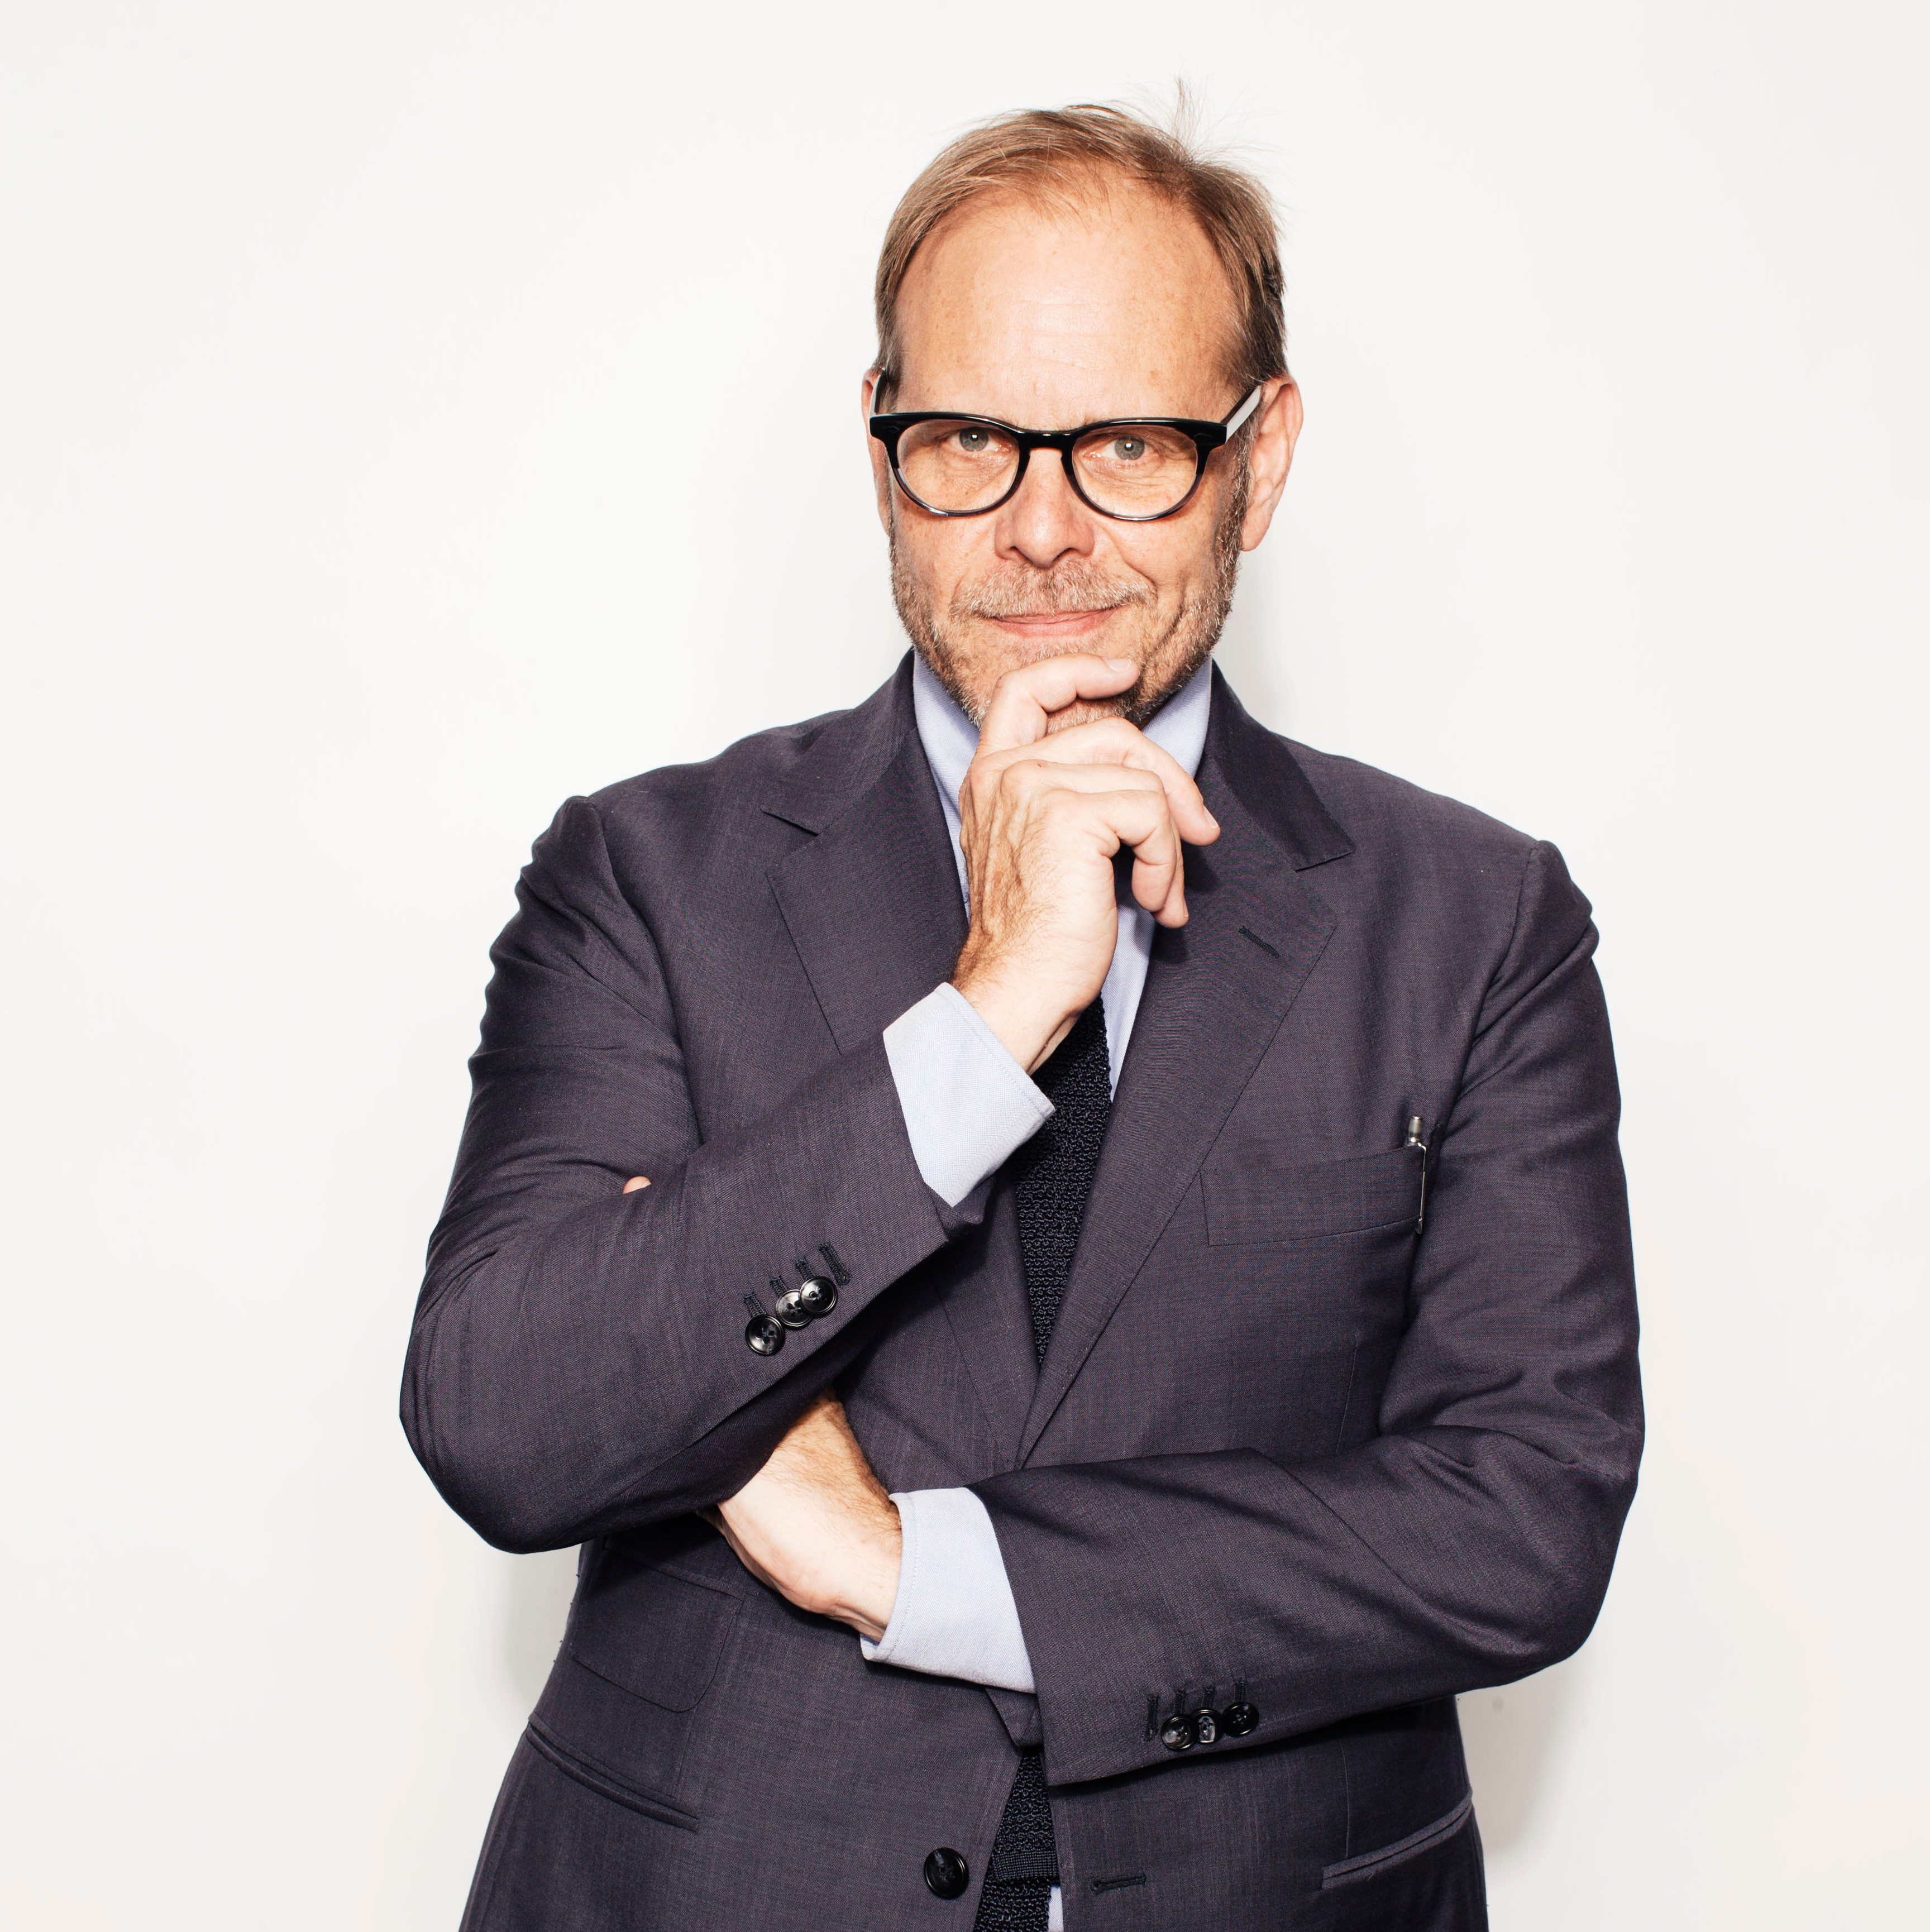 """Mandatory Credit: Photo by Victoria Will/Invision/AP/Shutterstock (9112648b) Alton Brown poses for a portrait in New York to promote his cookbook, """"EveryDayCook: This Time It's Personal,"""" and a live Broadway variety show with a mix of unusual food demonstrations, puppets and songs Alton Brown Portrait Session, New York, USA"""